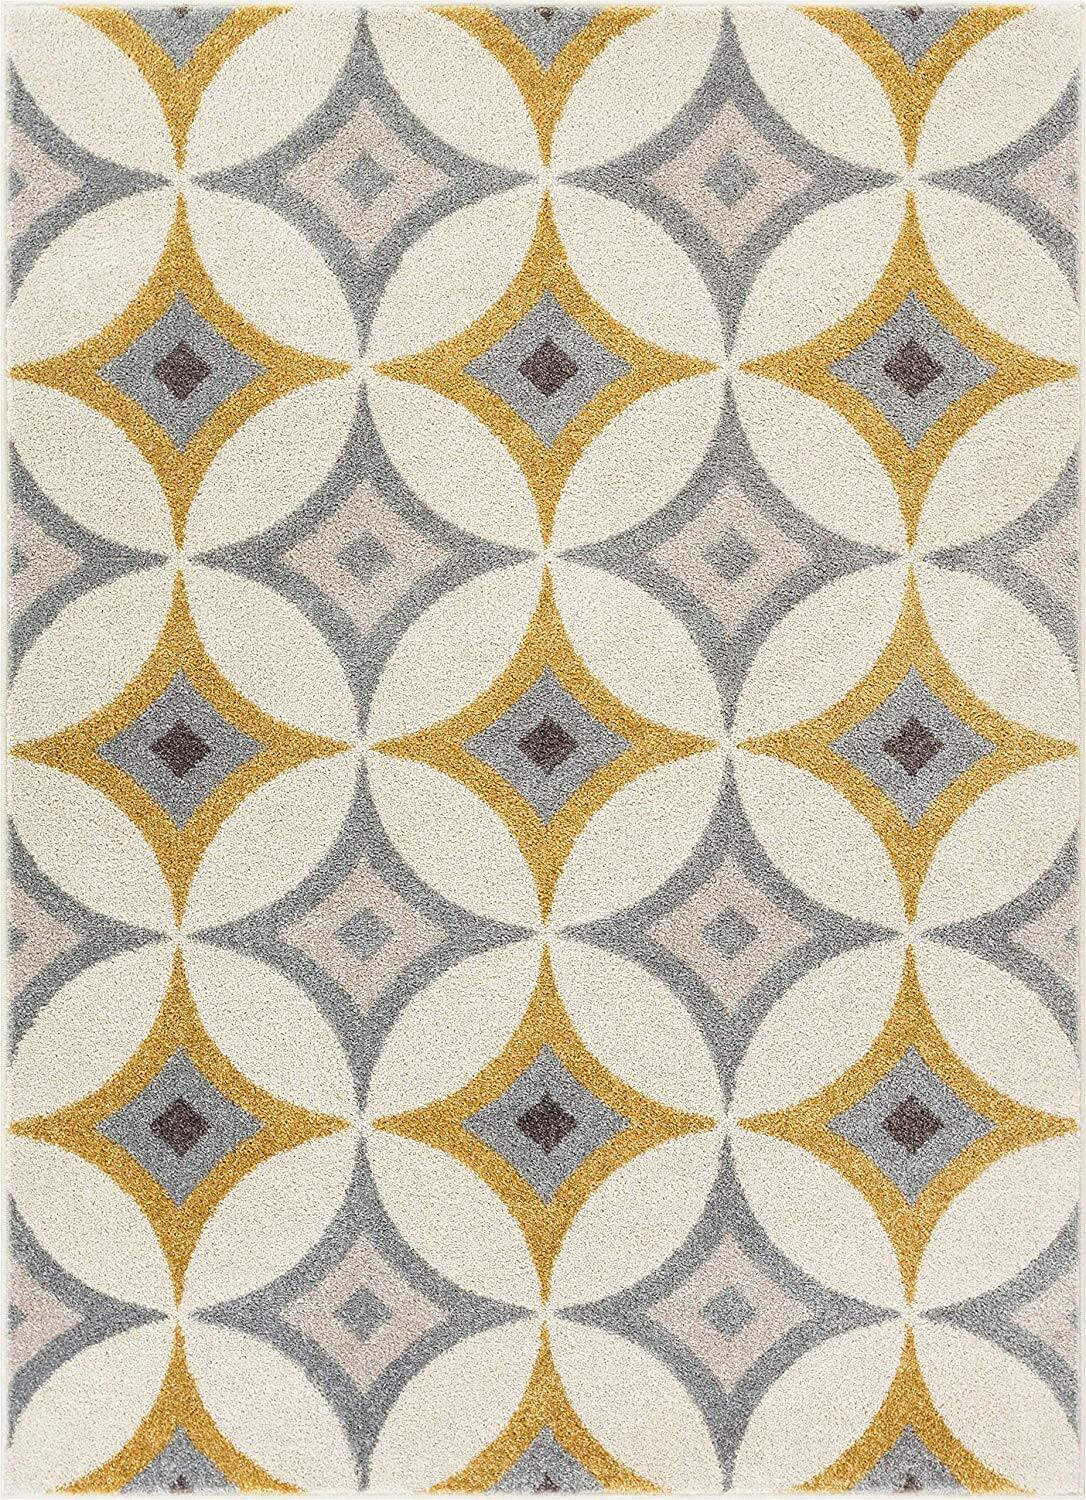 A mid-century rug with diamond shapes all over.